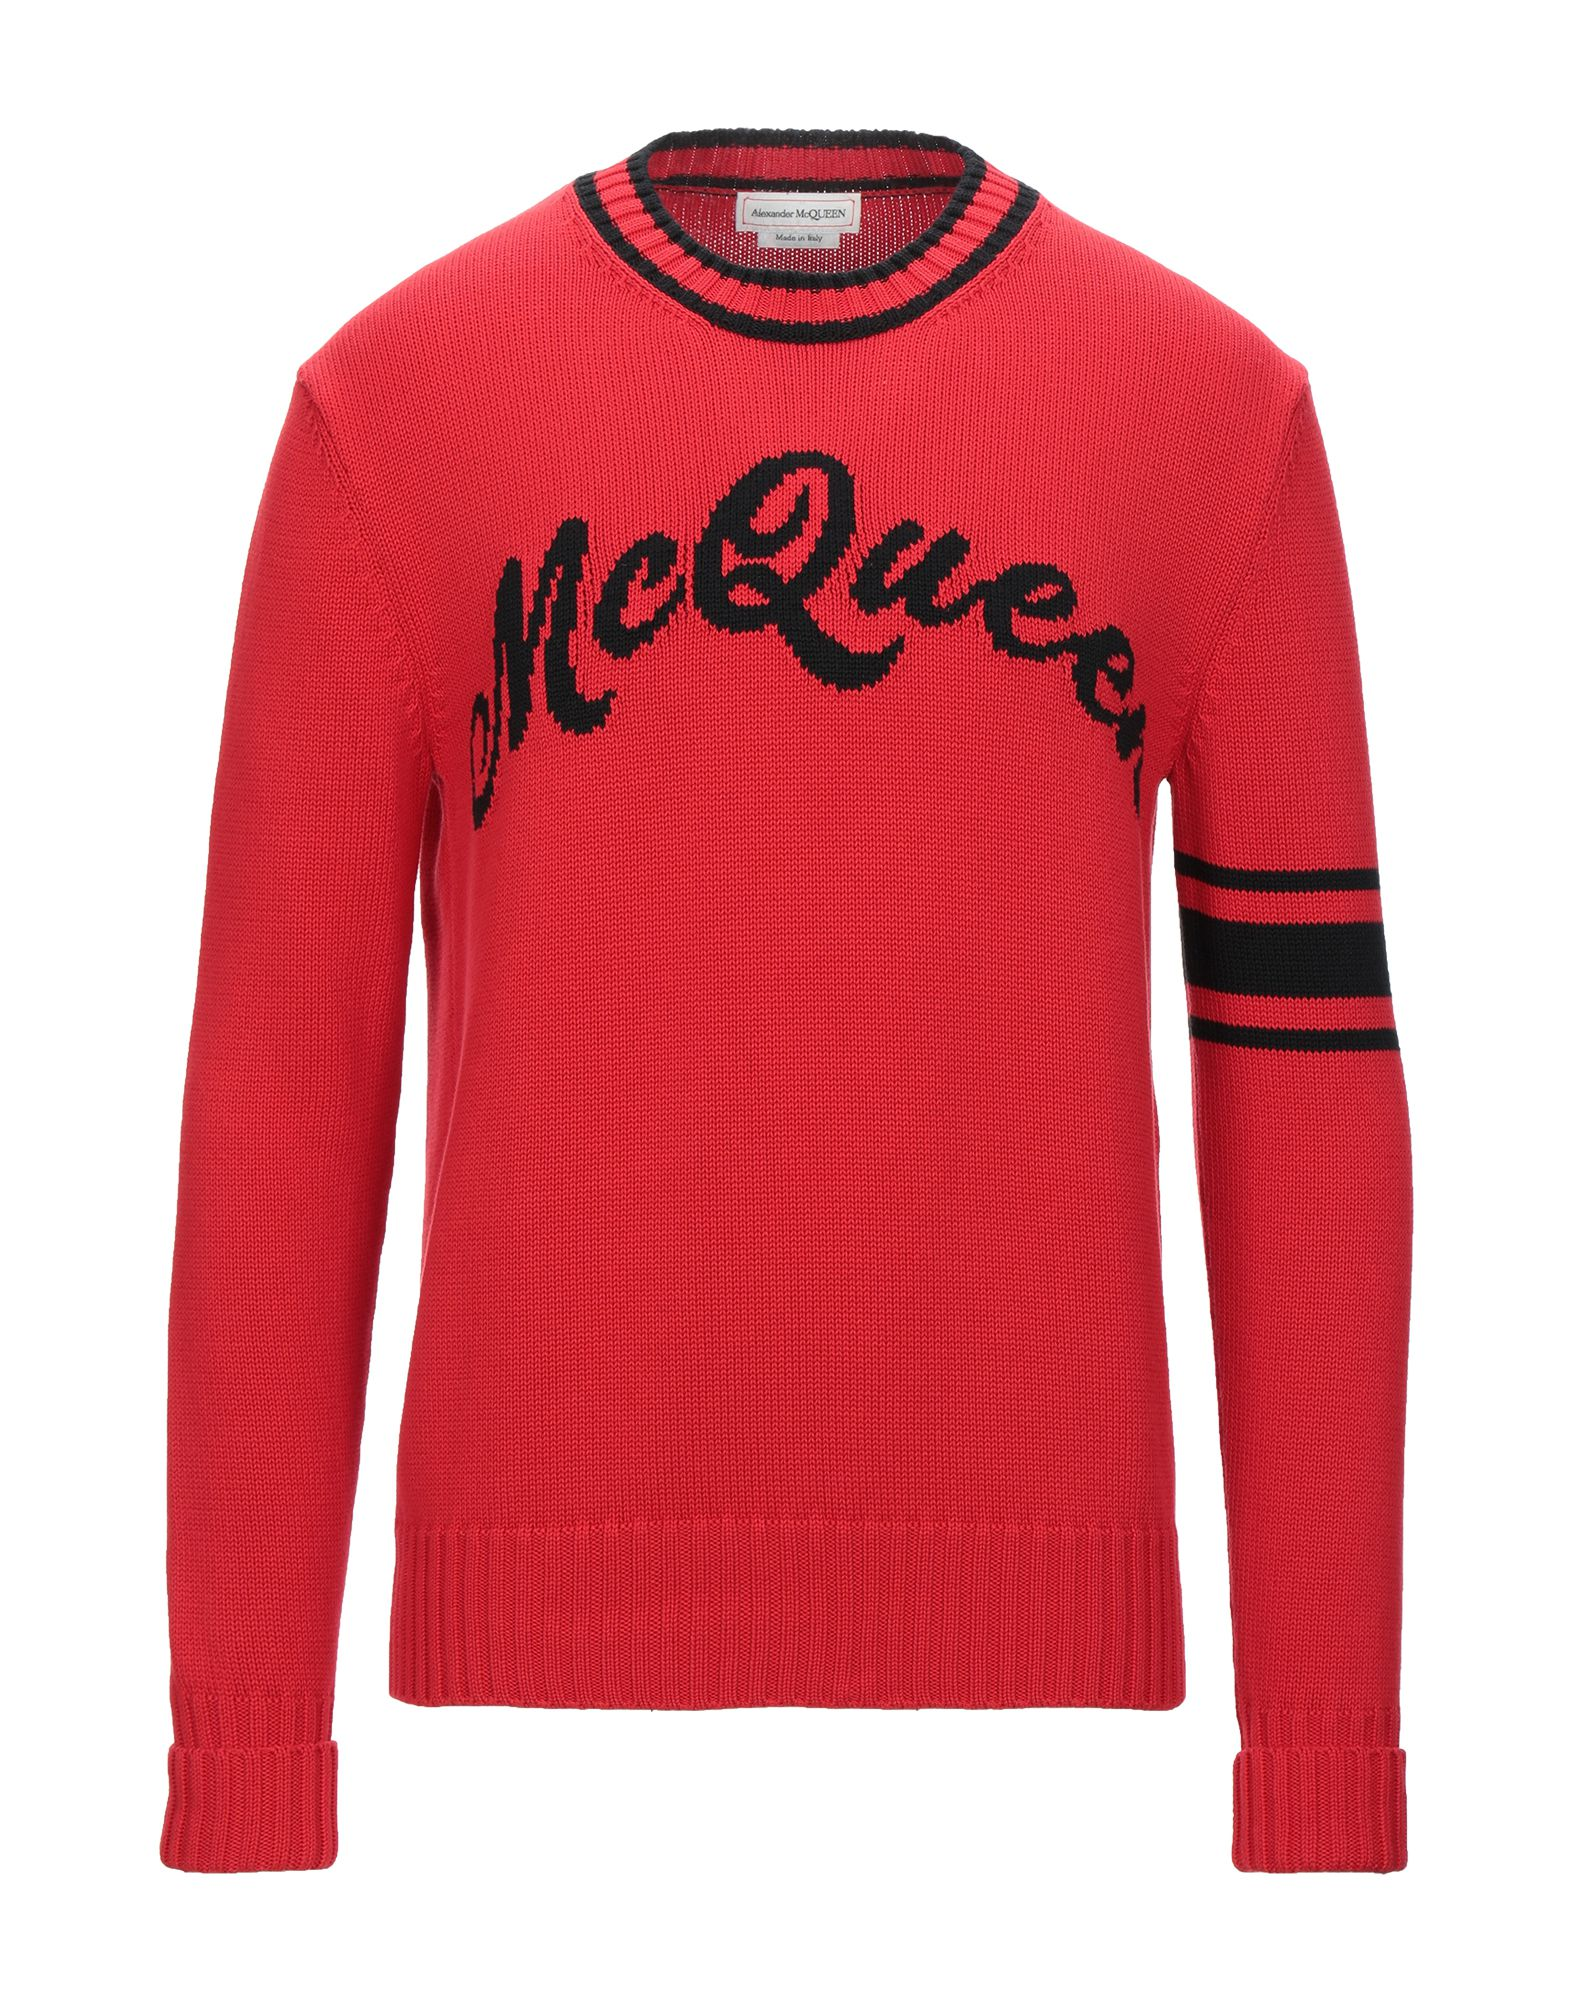 ALEXANDER MCQUEEN Sweaters. knitted, logo, embroidered detailing, round collar, medium-weight knit, two-tone, long sleeves, no pockets. 100% Cotton